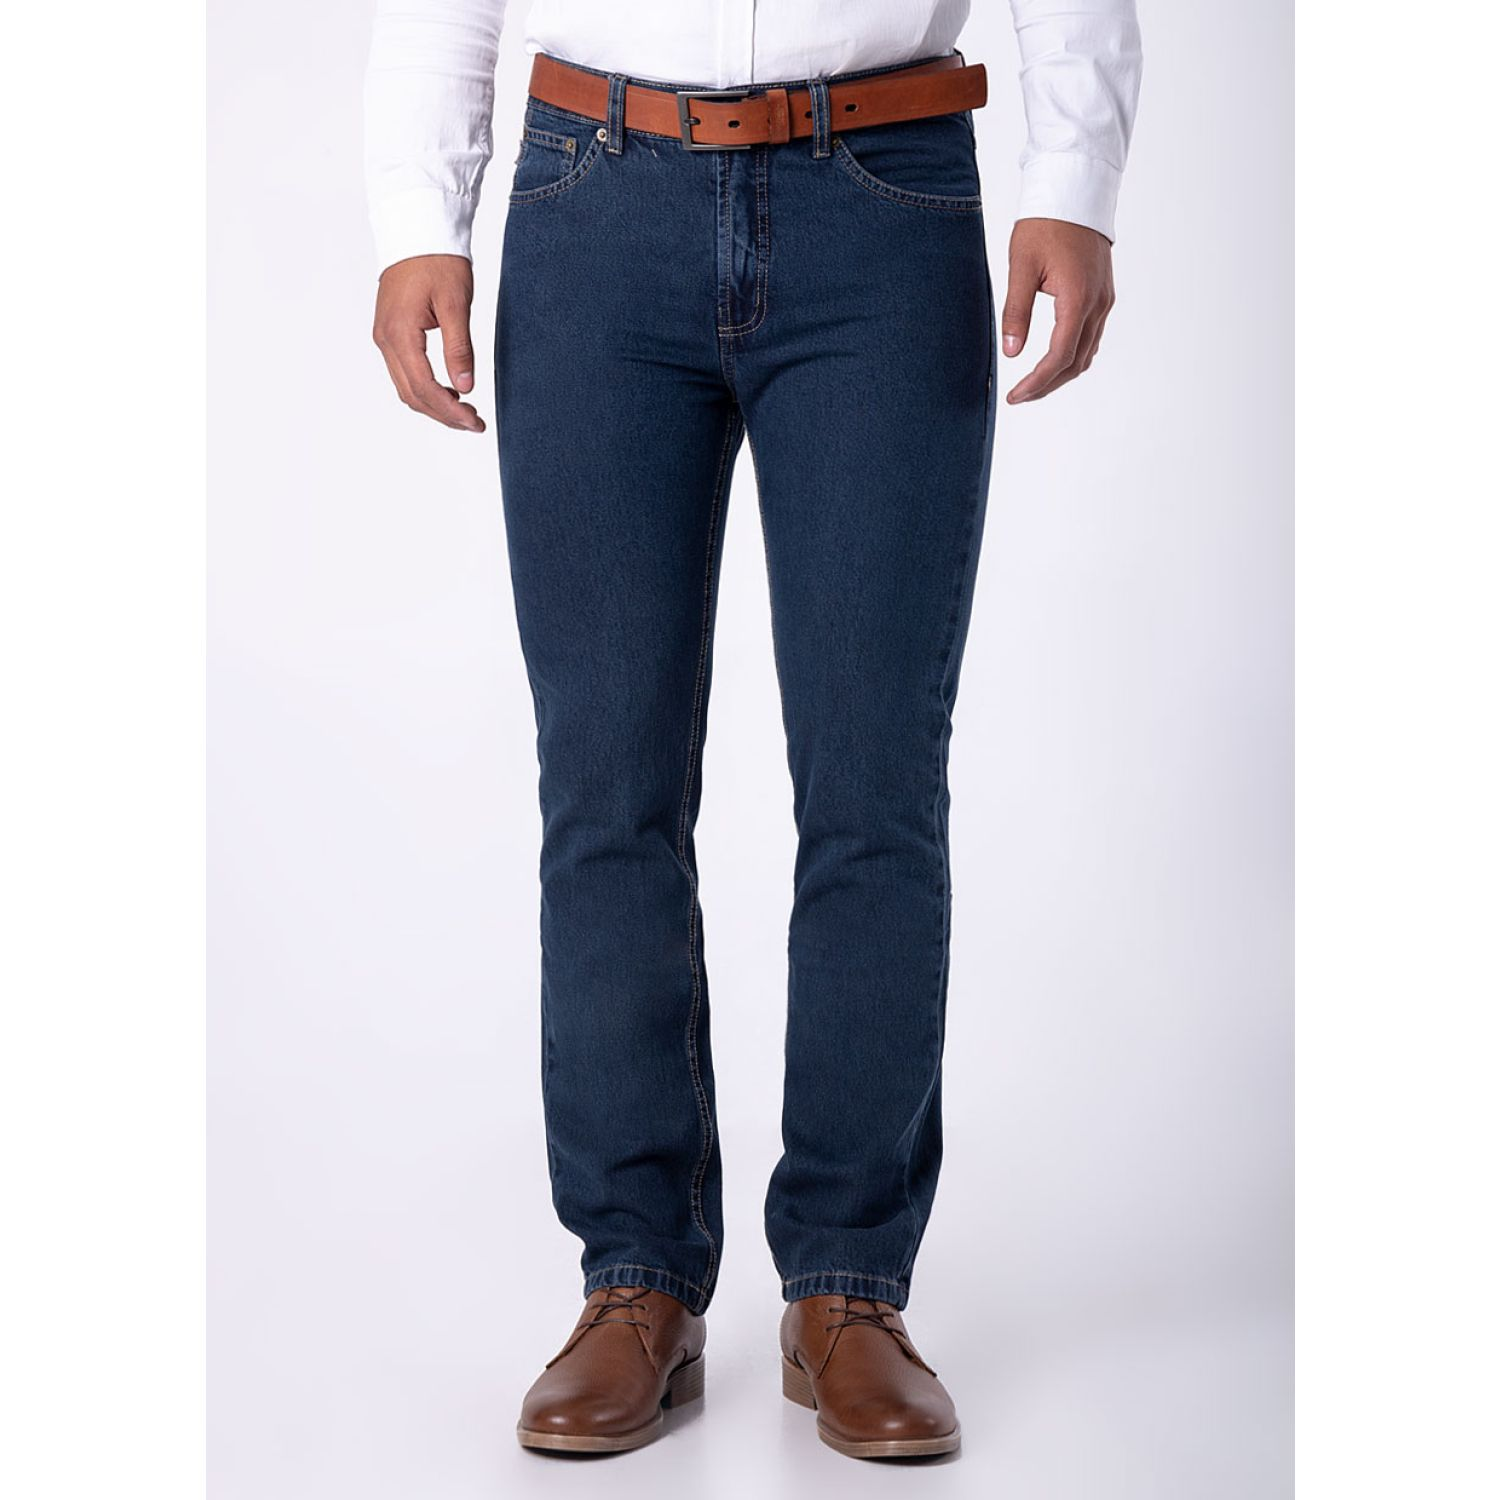 PIONIER Jeans Rigido Ronald GRAY Casual